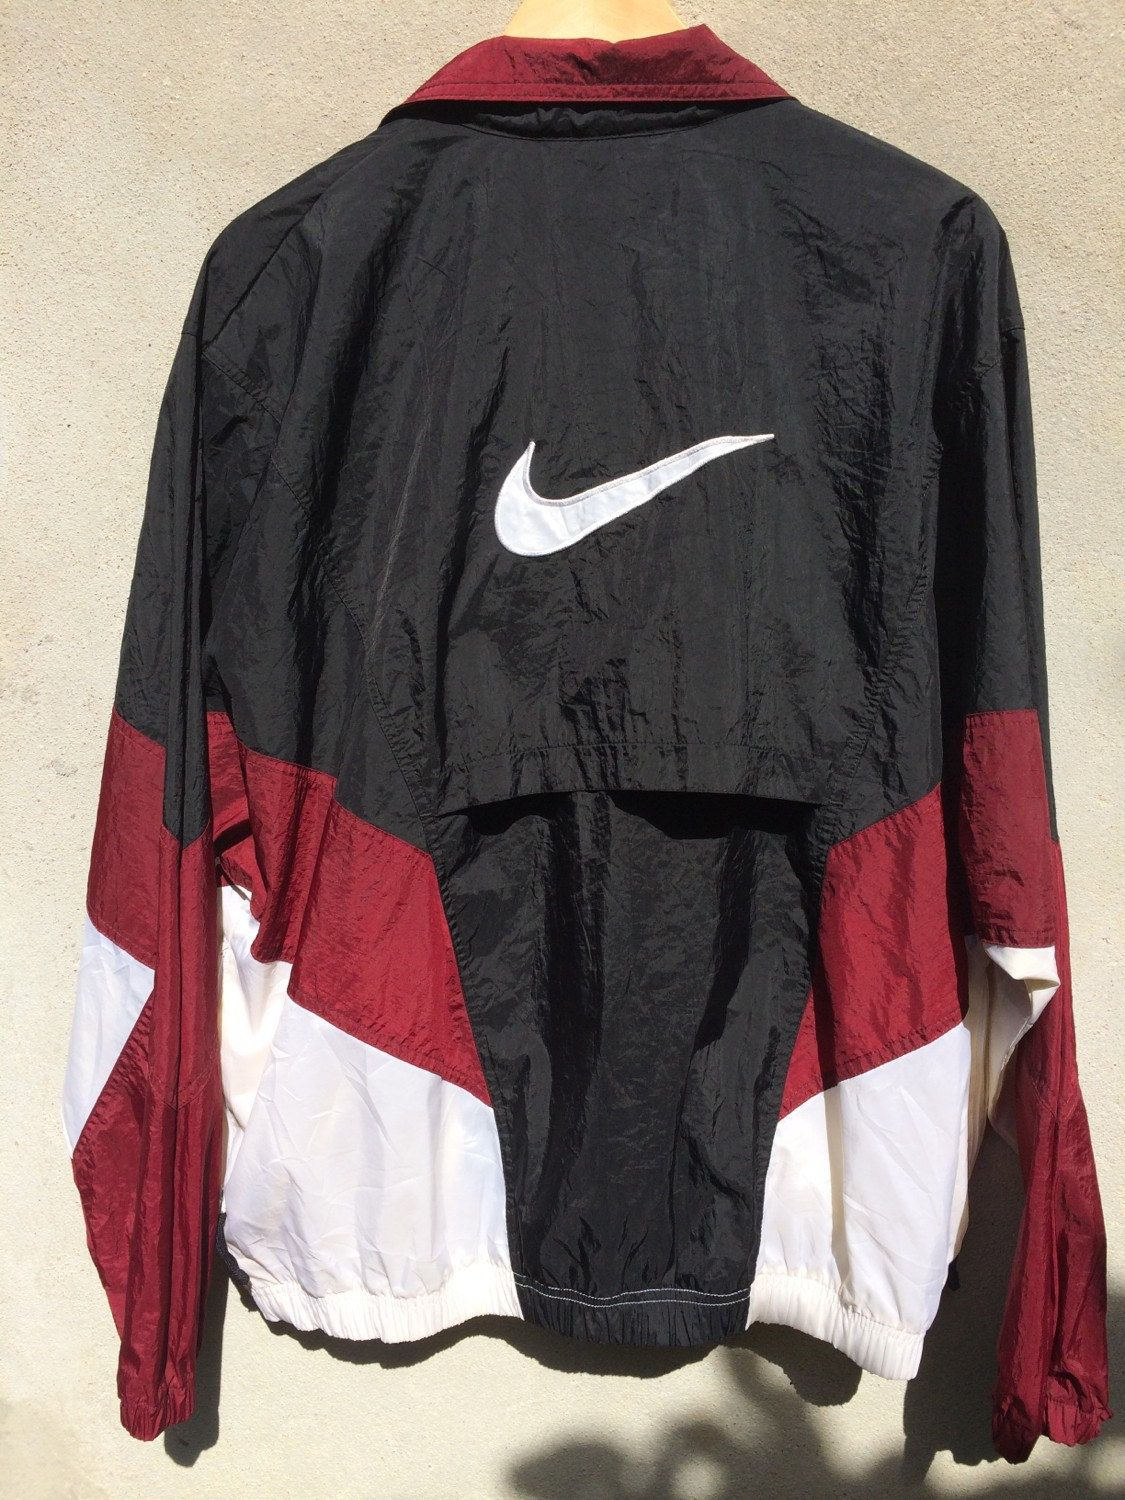 cd1a765e7 VINTAGE 90S NIKE WINDBREAKER SWEATER JACKET on The Hunt | Clothes ...